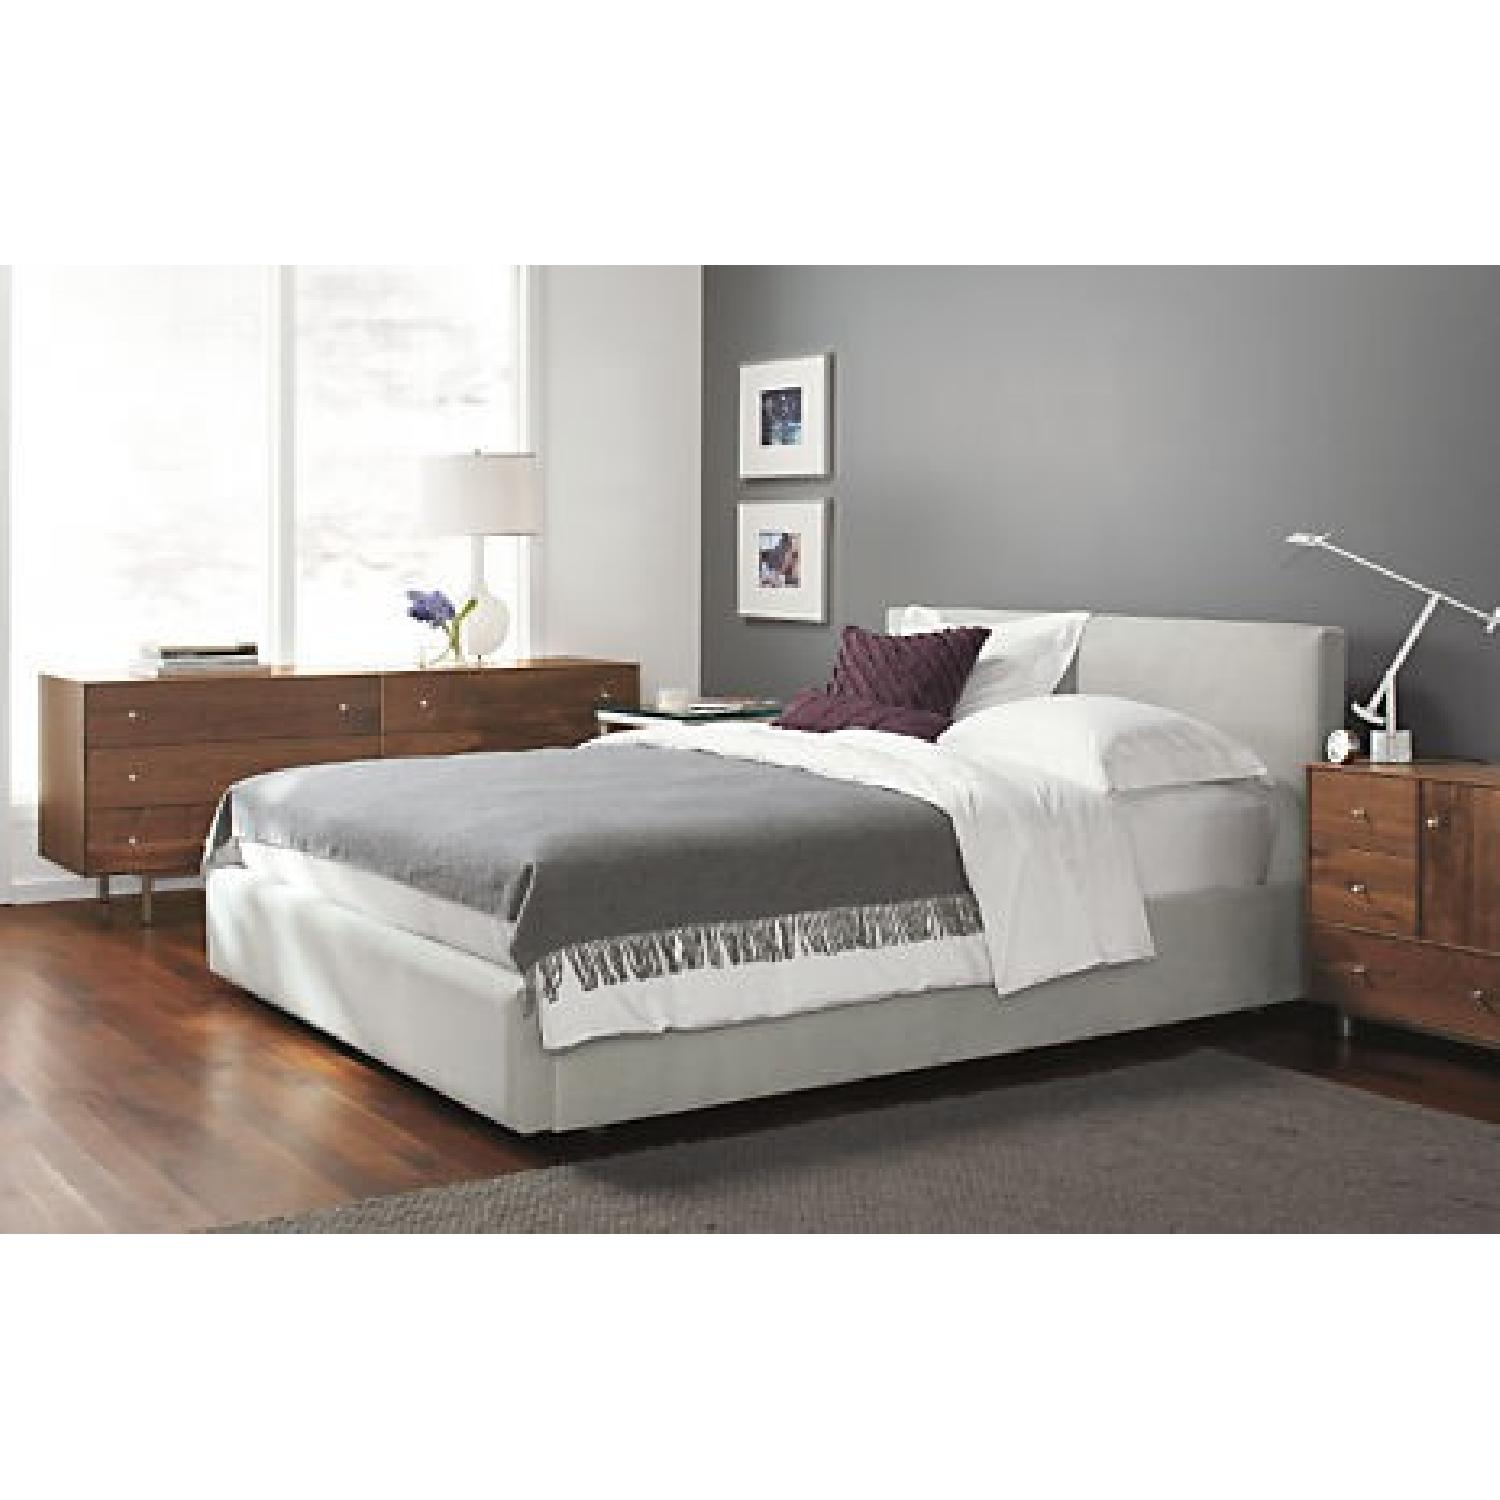 Room & Board King Size Wyatt Storage Bed - image-3